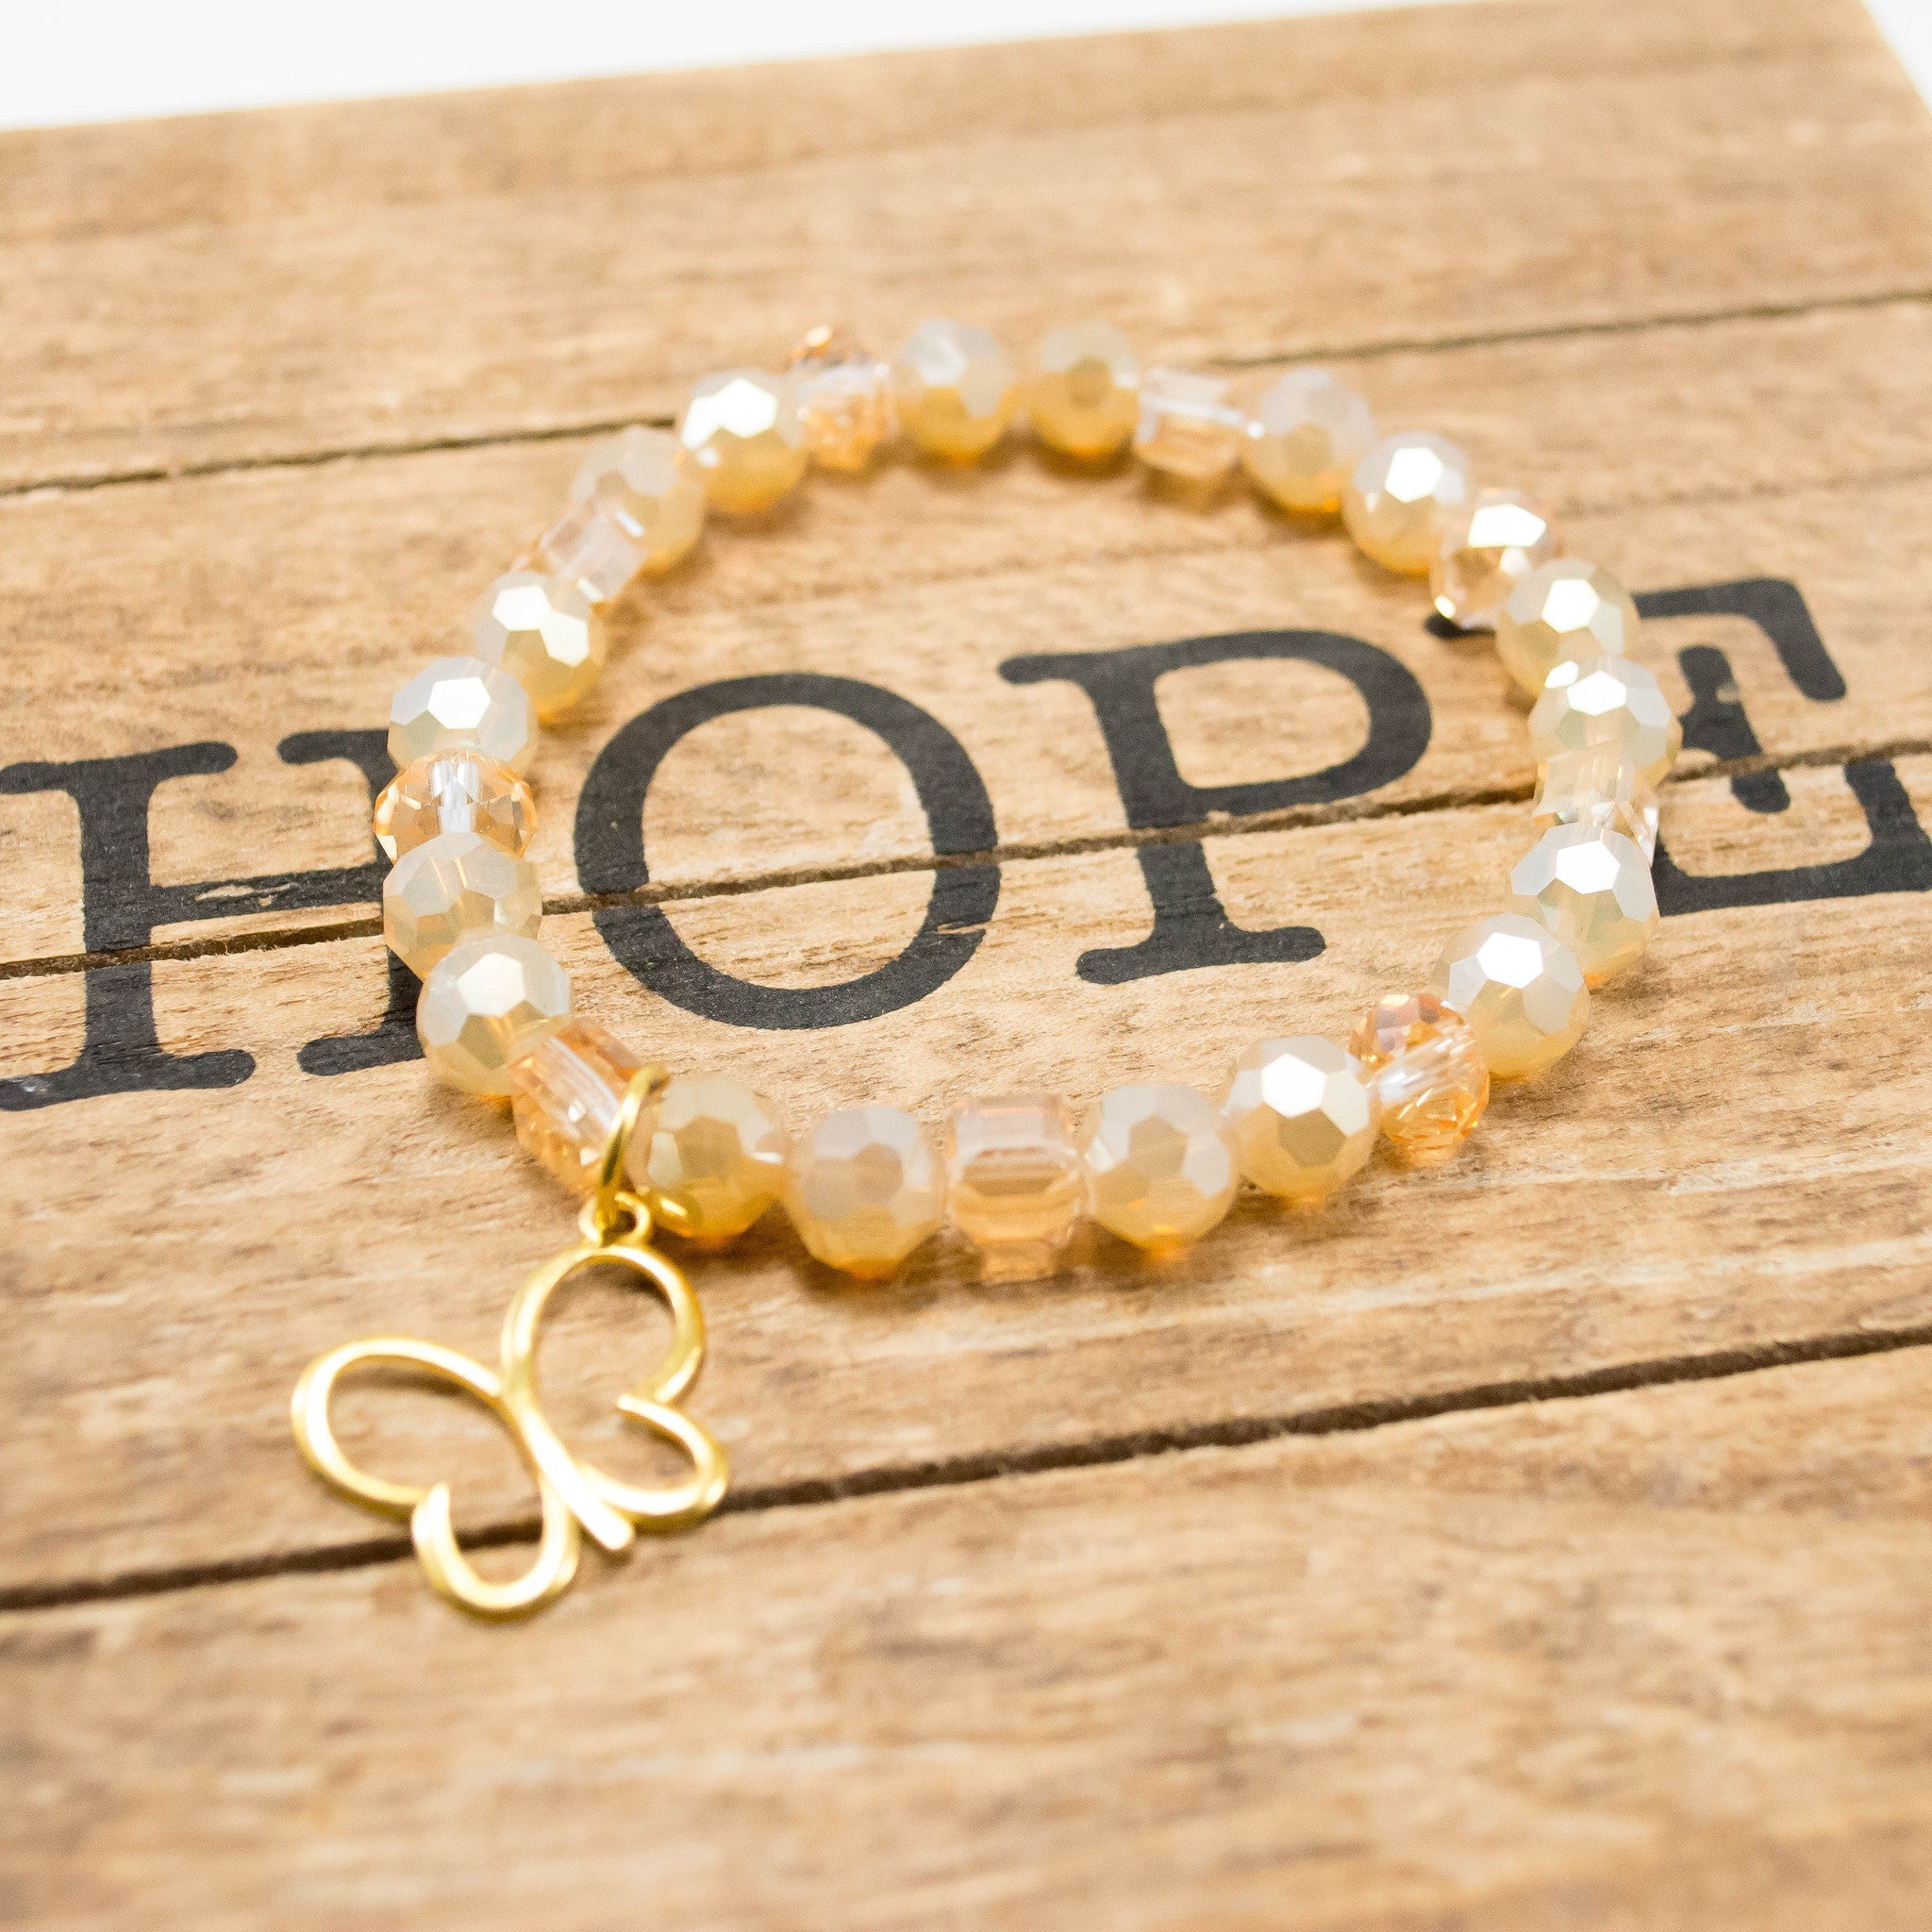 bracelet support jewelry to make awareness bracelets cancer pin how